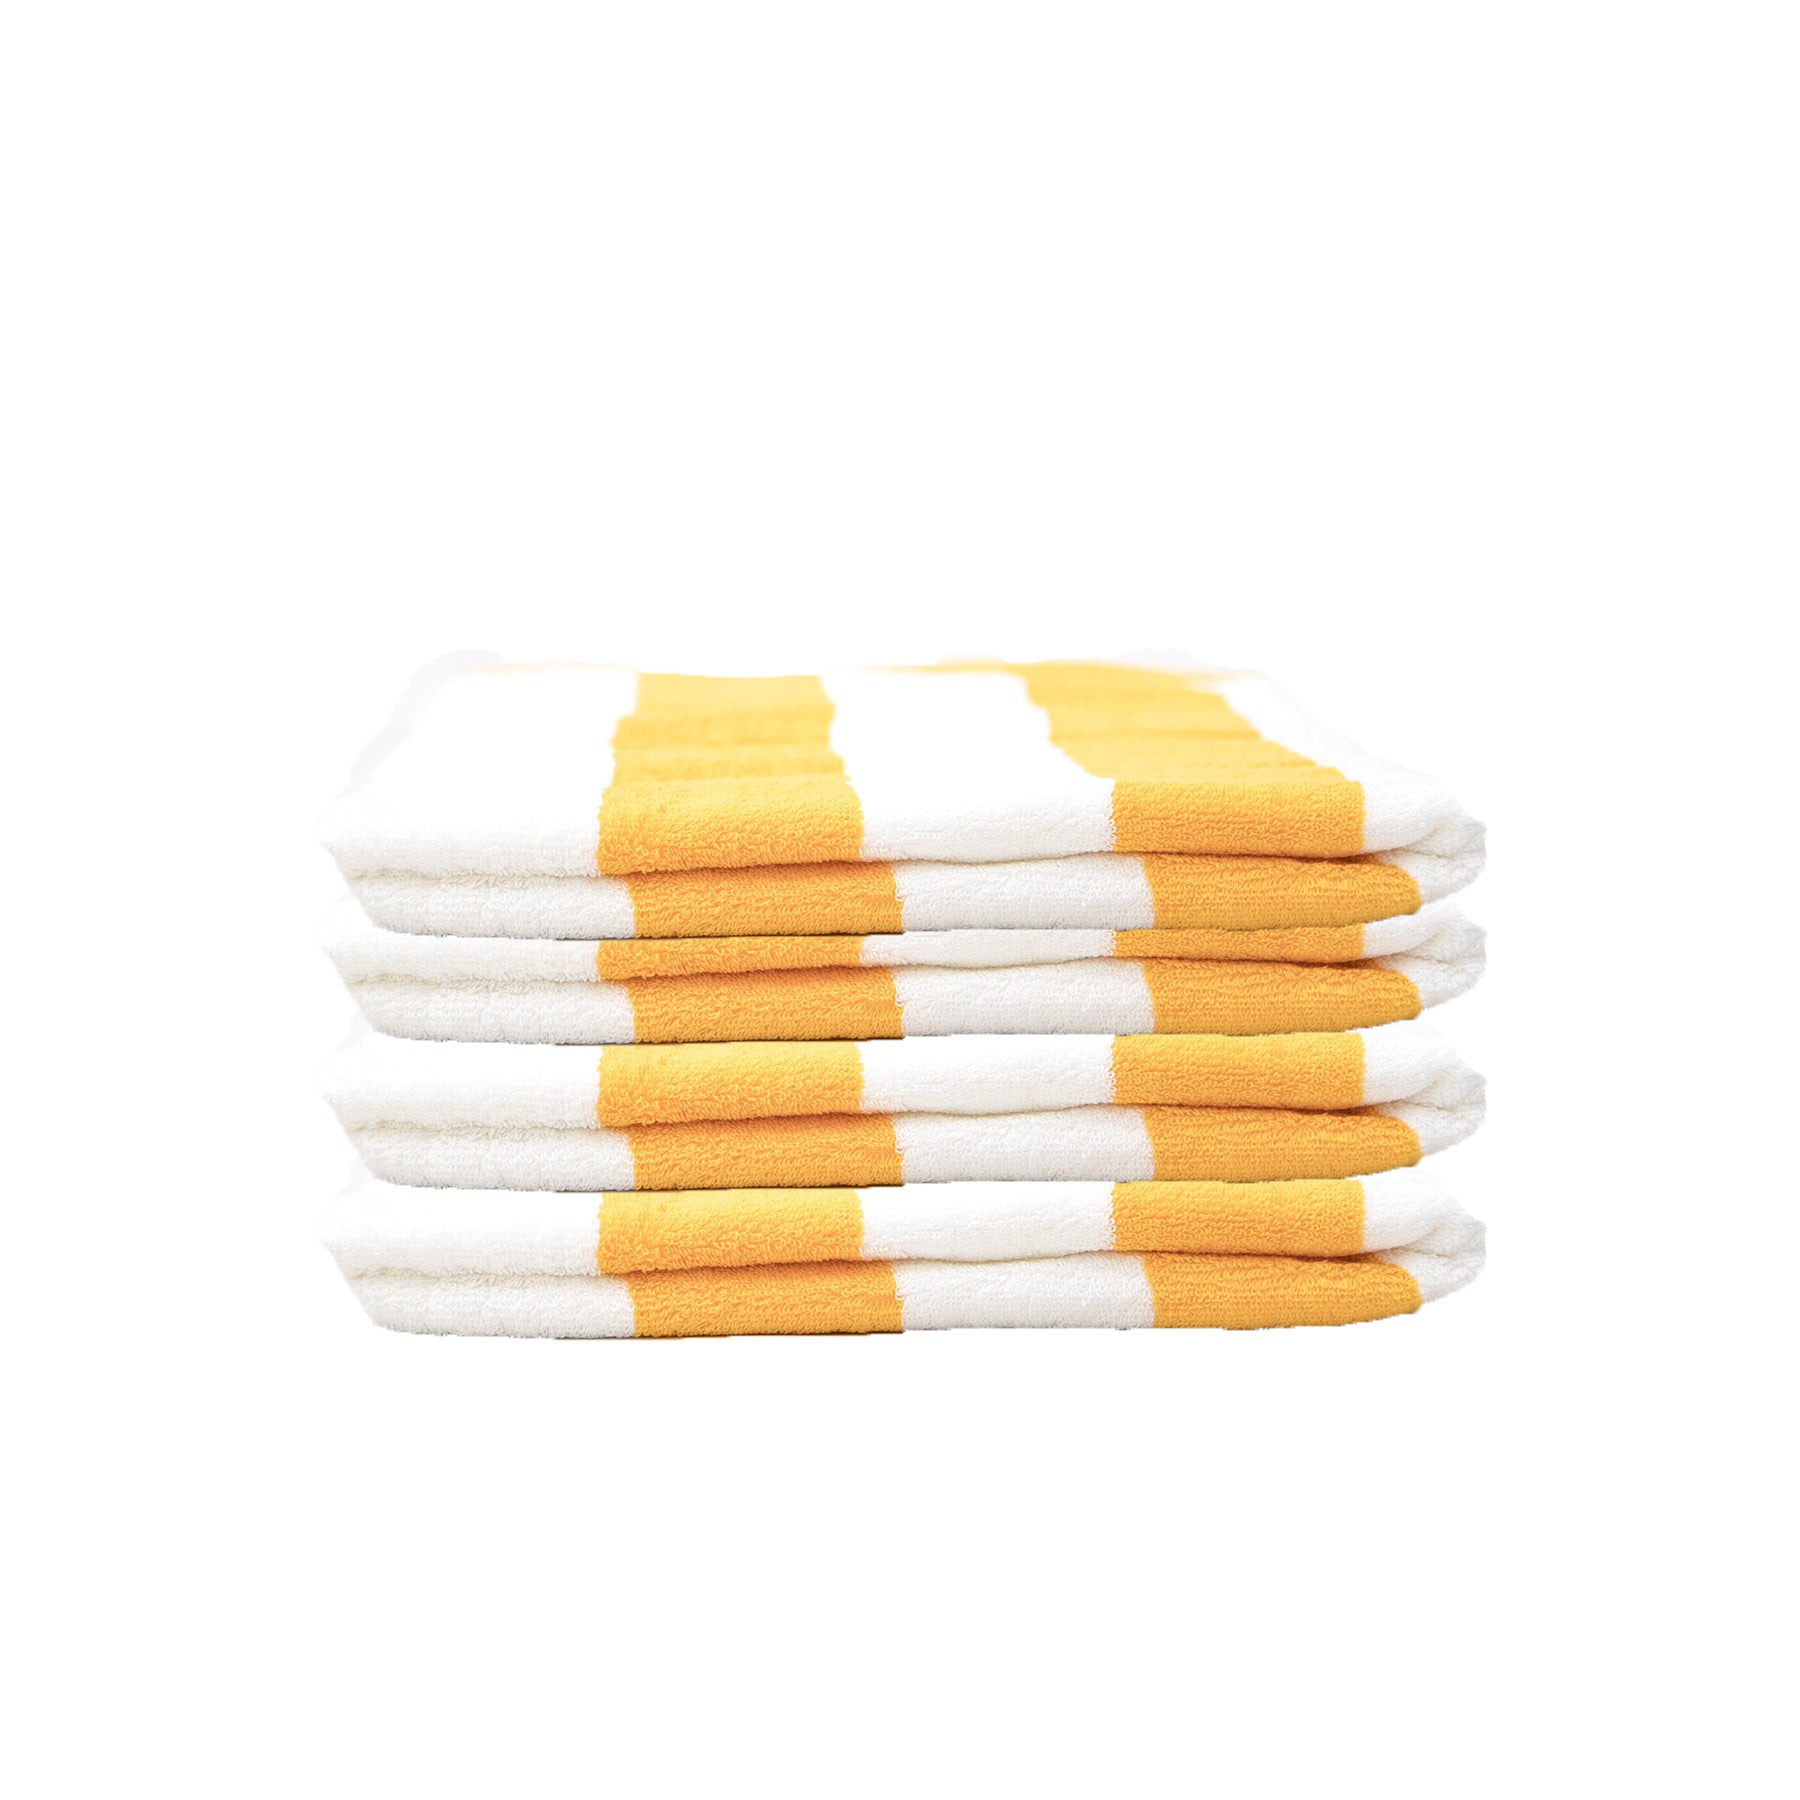 Cabana Striped Pool Towel - Athletic Gold - Terry House